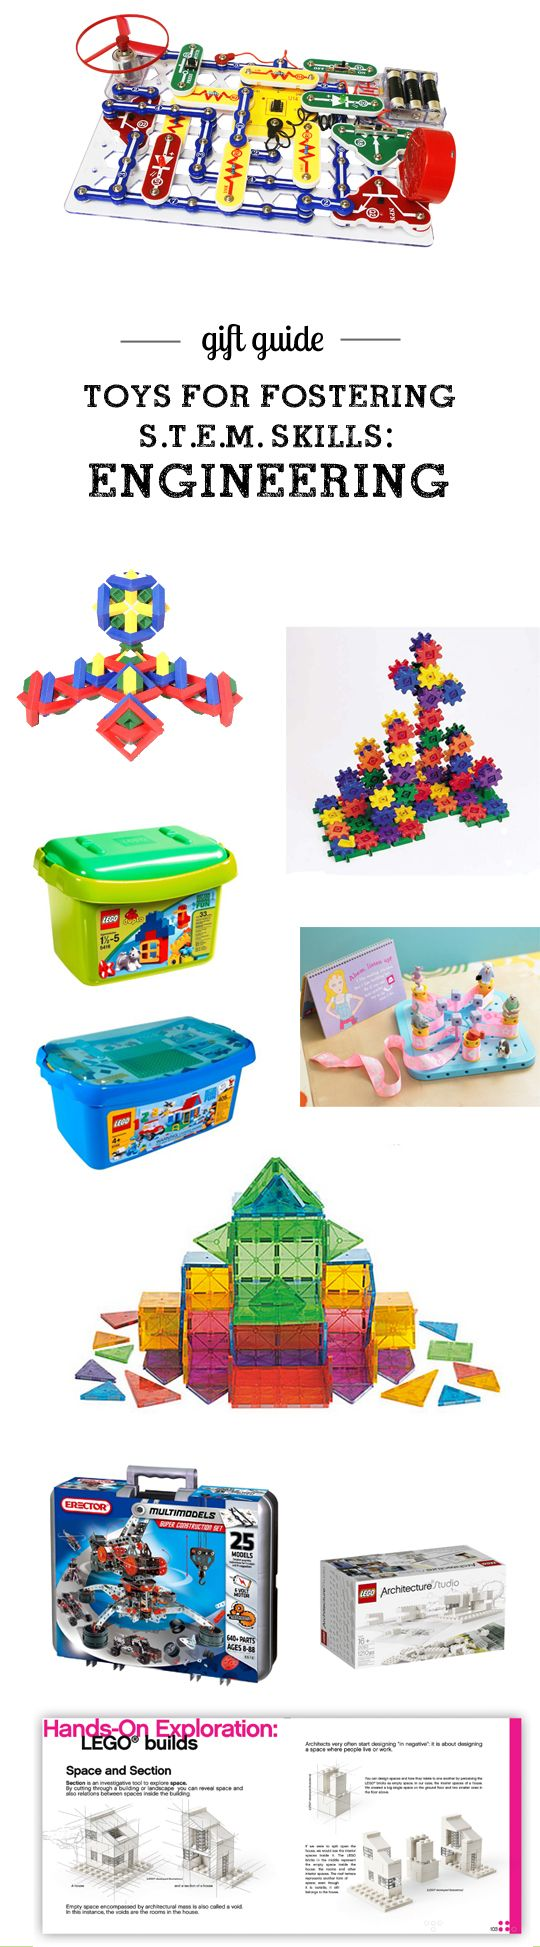 Gift guide: Top S.T.E.M. (Science, Technology, Engineering, & Math) Picks for all ages - so many great toys for working on engineering skills here! Love the detailed descriptions and age recommendations.: